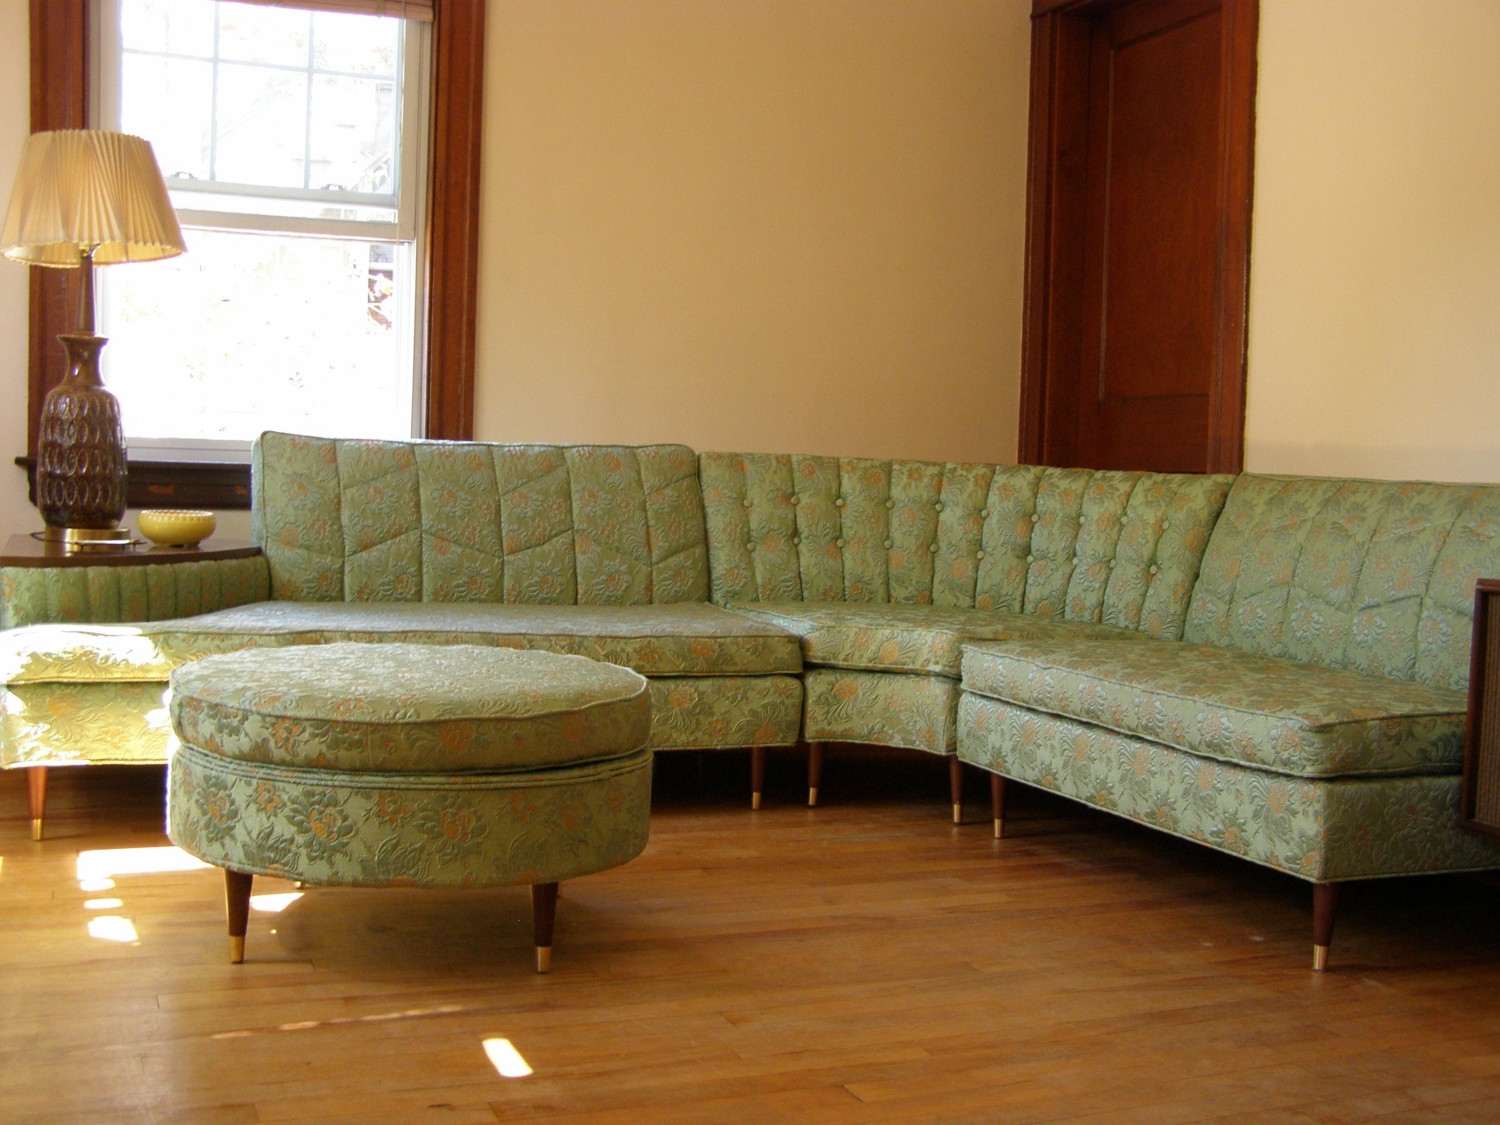 New Years Sale Vintage Sectional Sofa With Built In Side Table Regarding Retro Sofas For Sale (View 5 of 15)